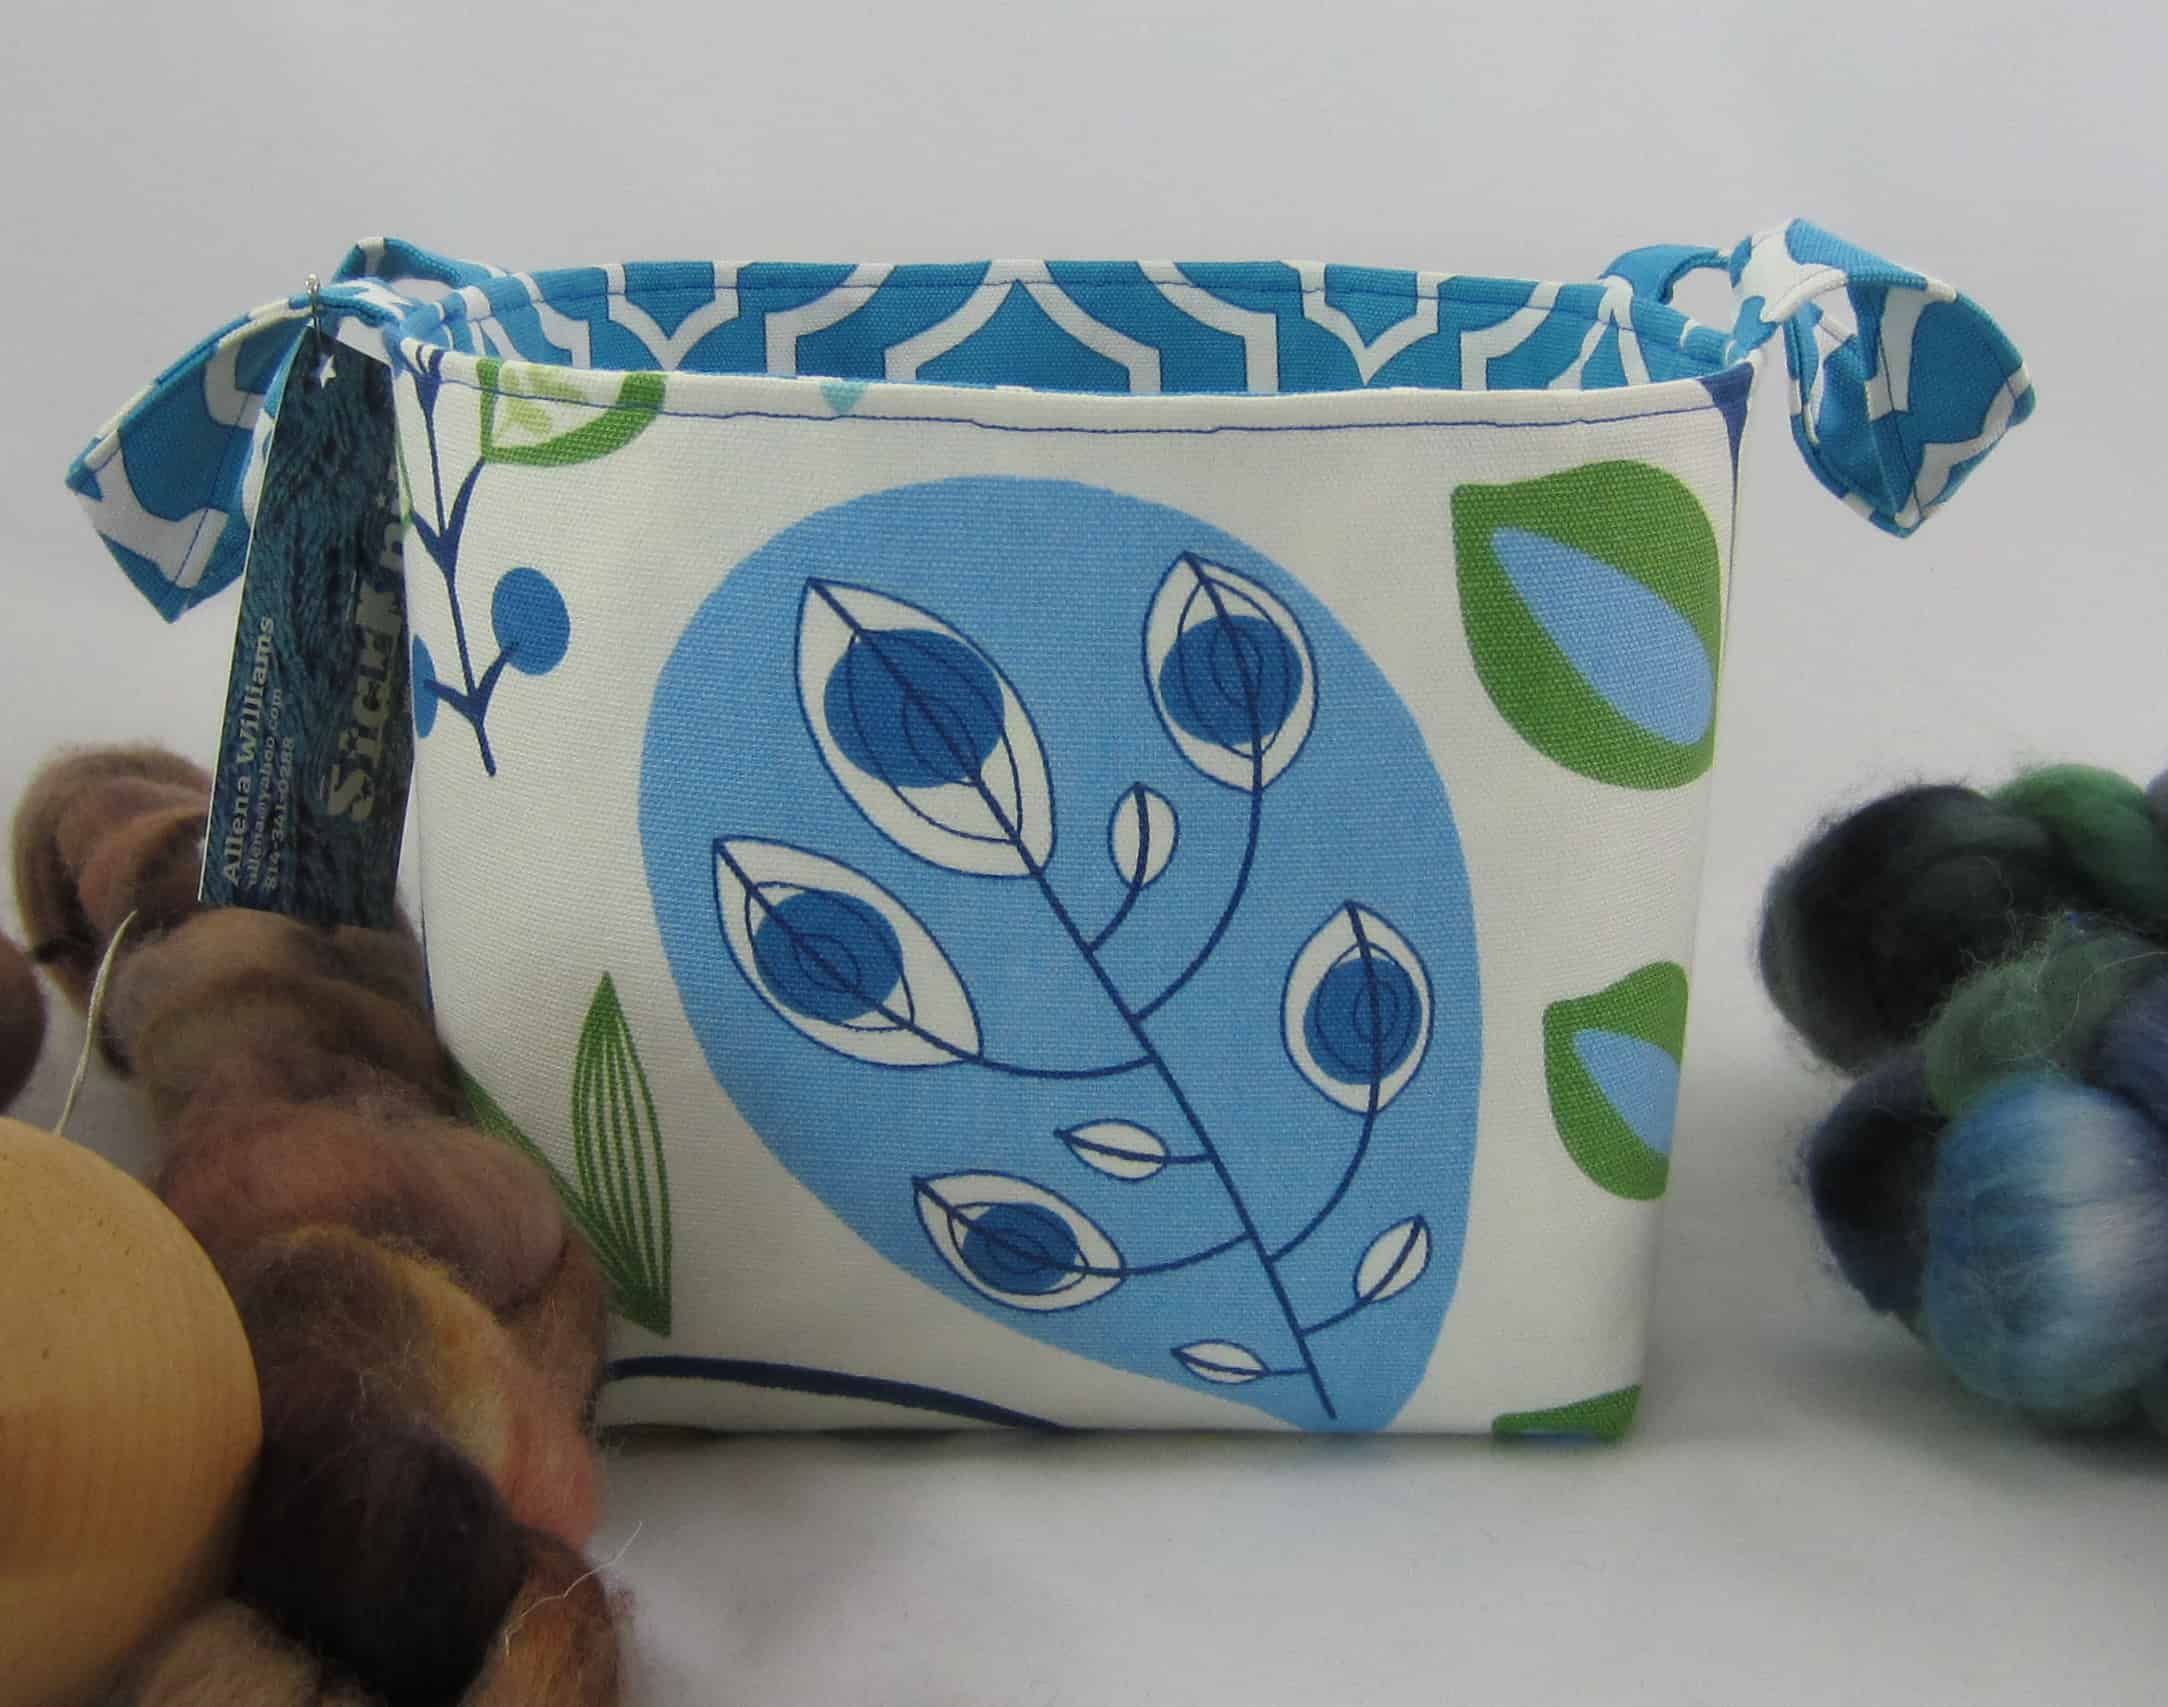 A white bag with a blue and green leaf pattern.